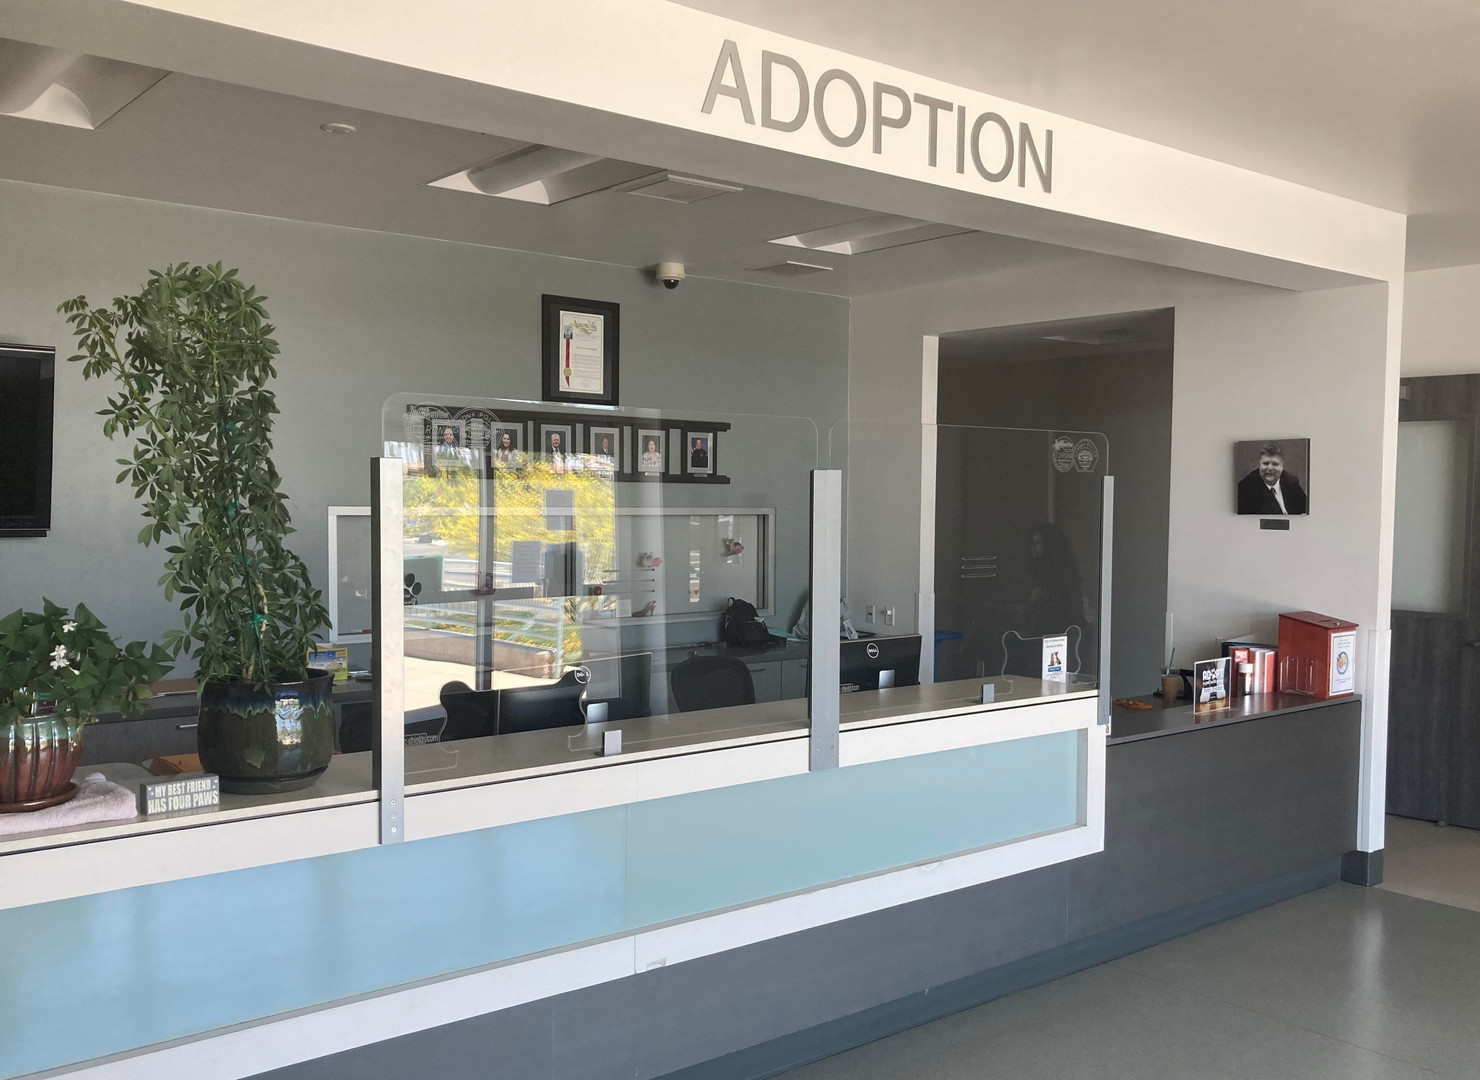 Adoption Counter.jpg